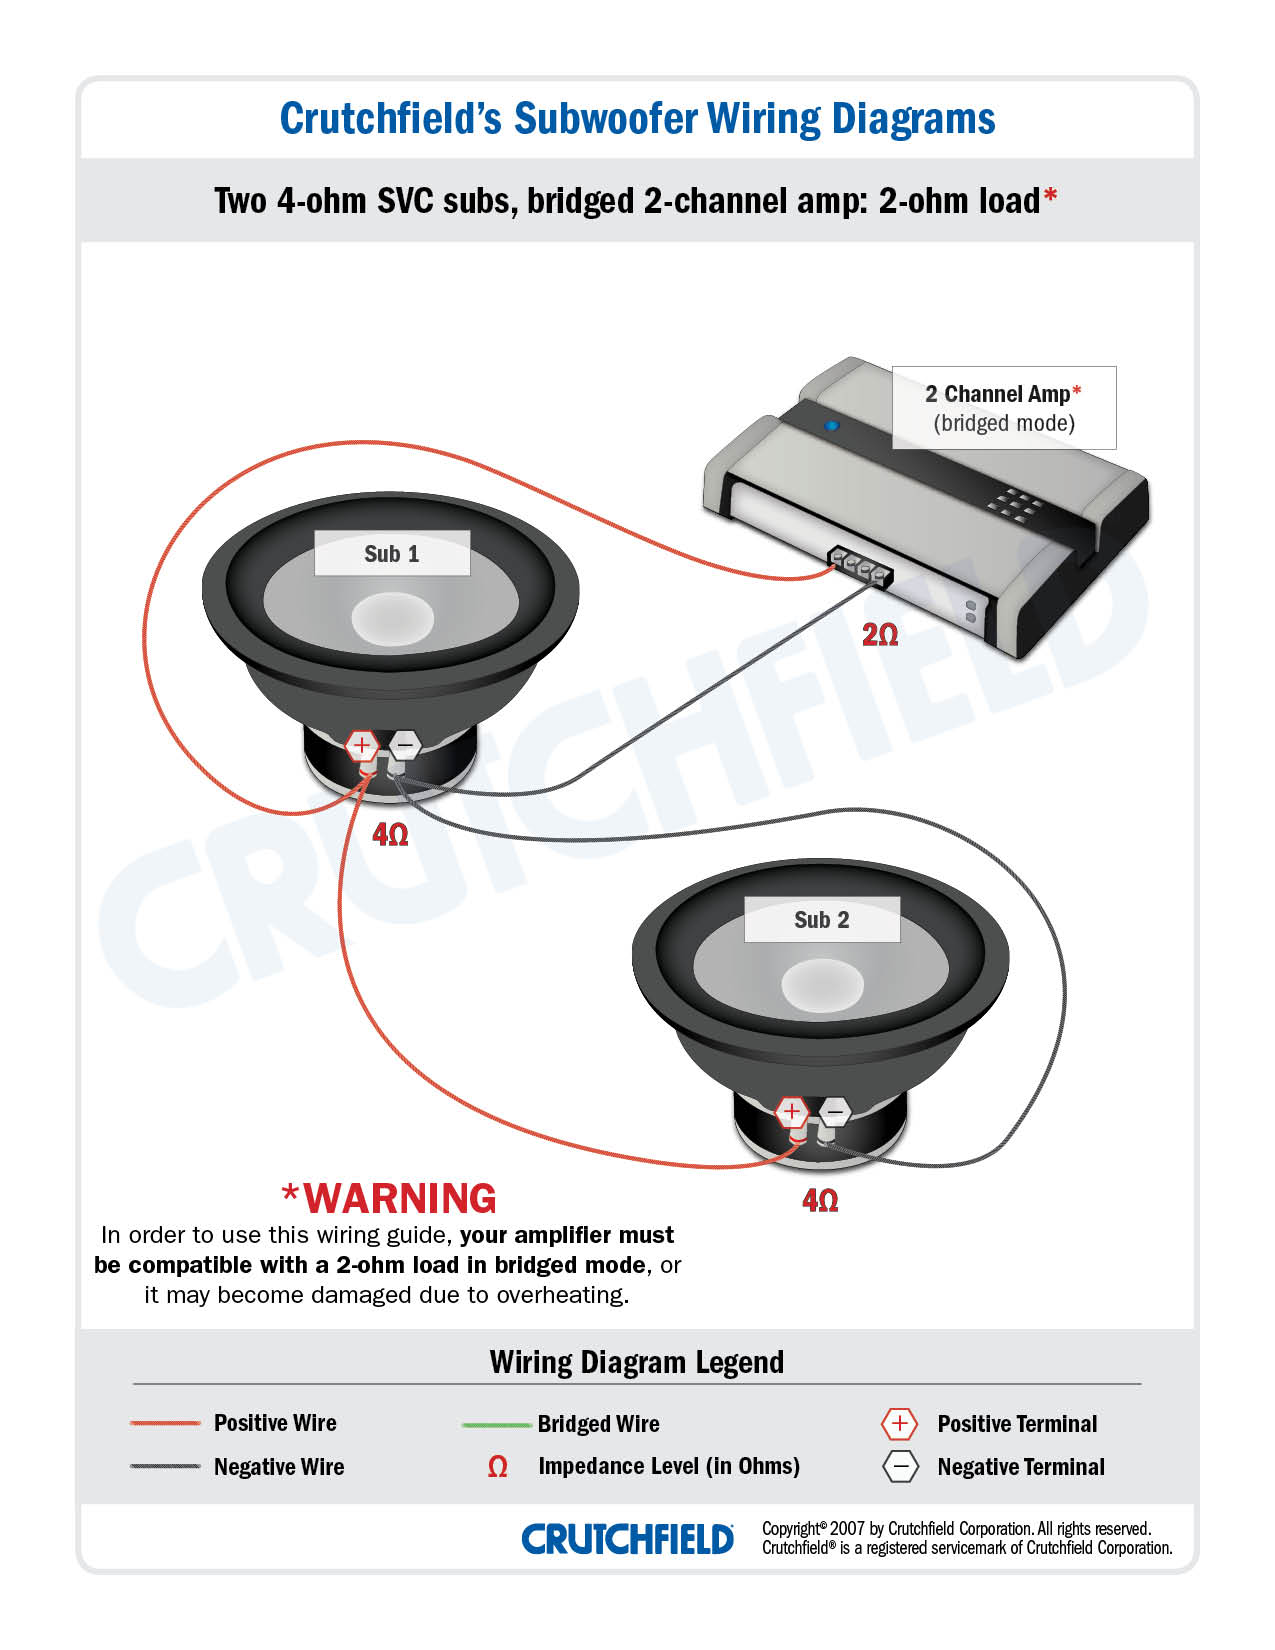 Subwoofer Wiring Diagrams – Infinity Gold Amp Wiring Diagram